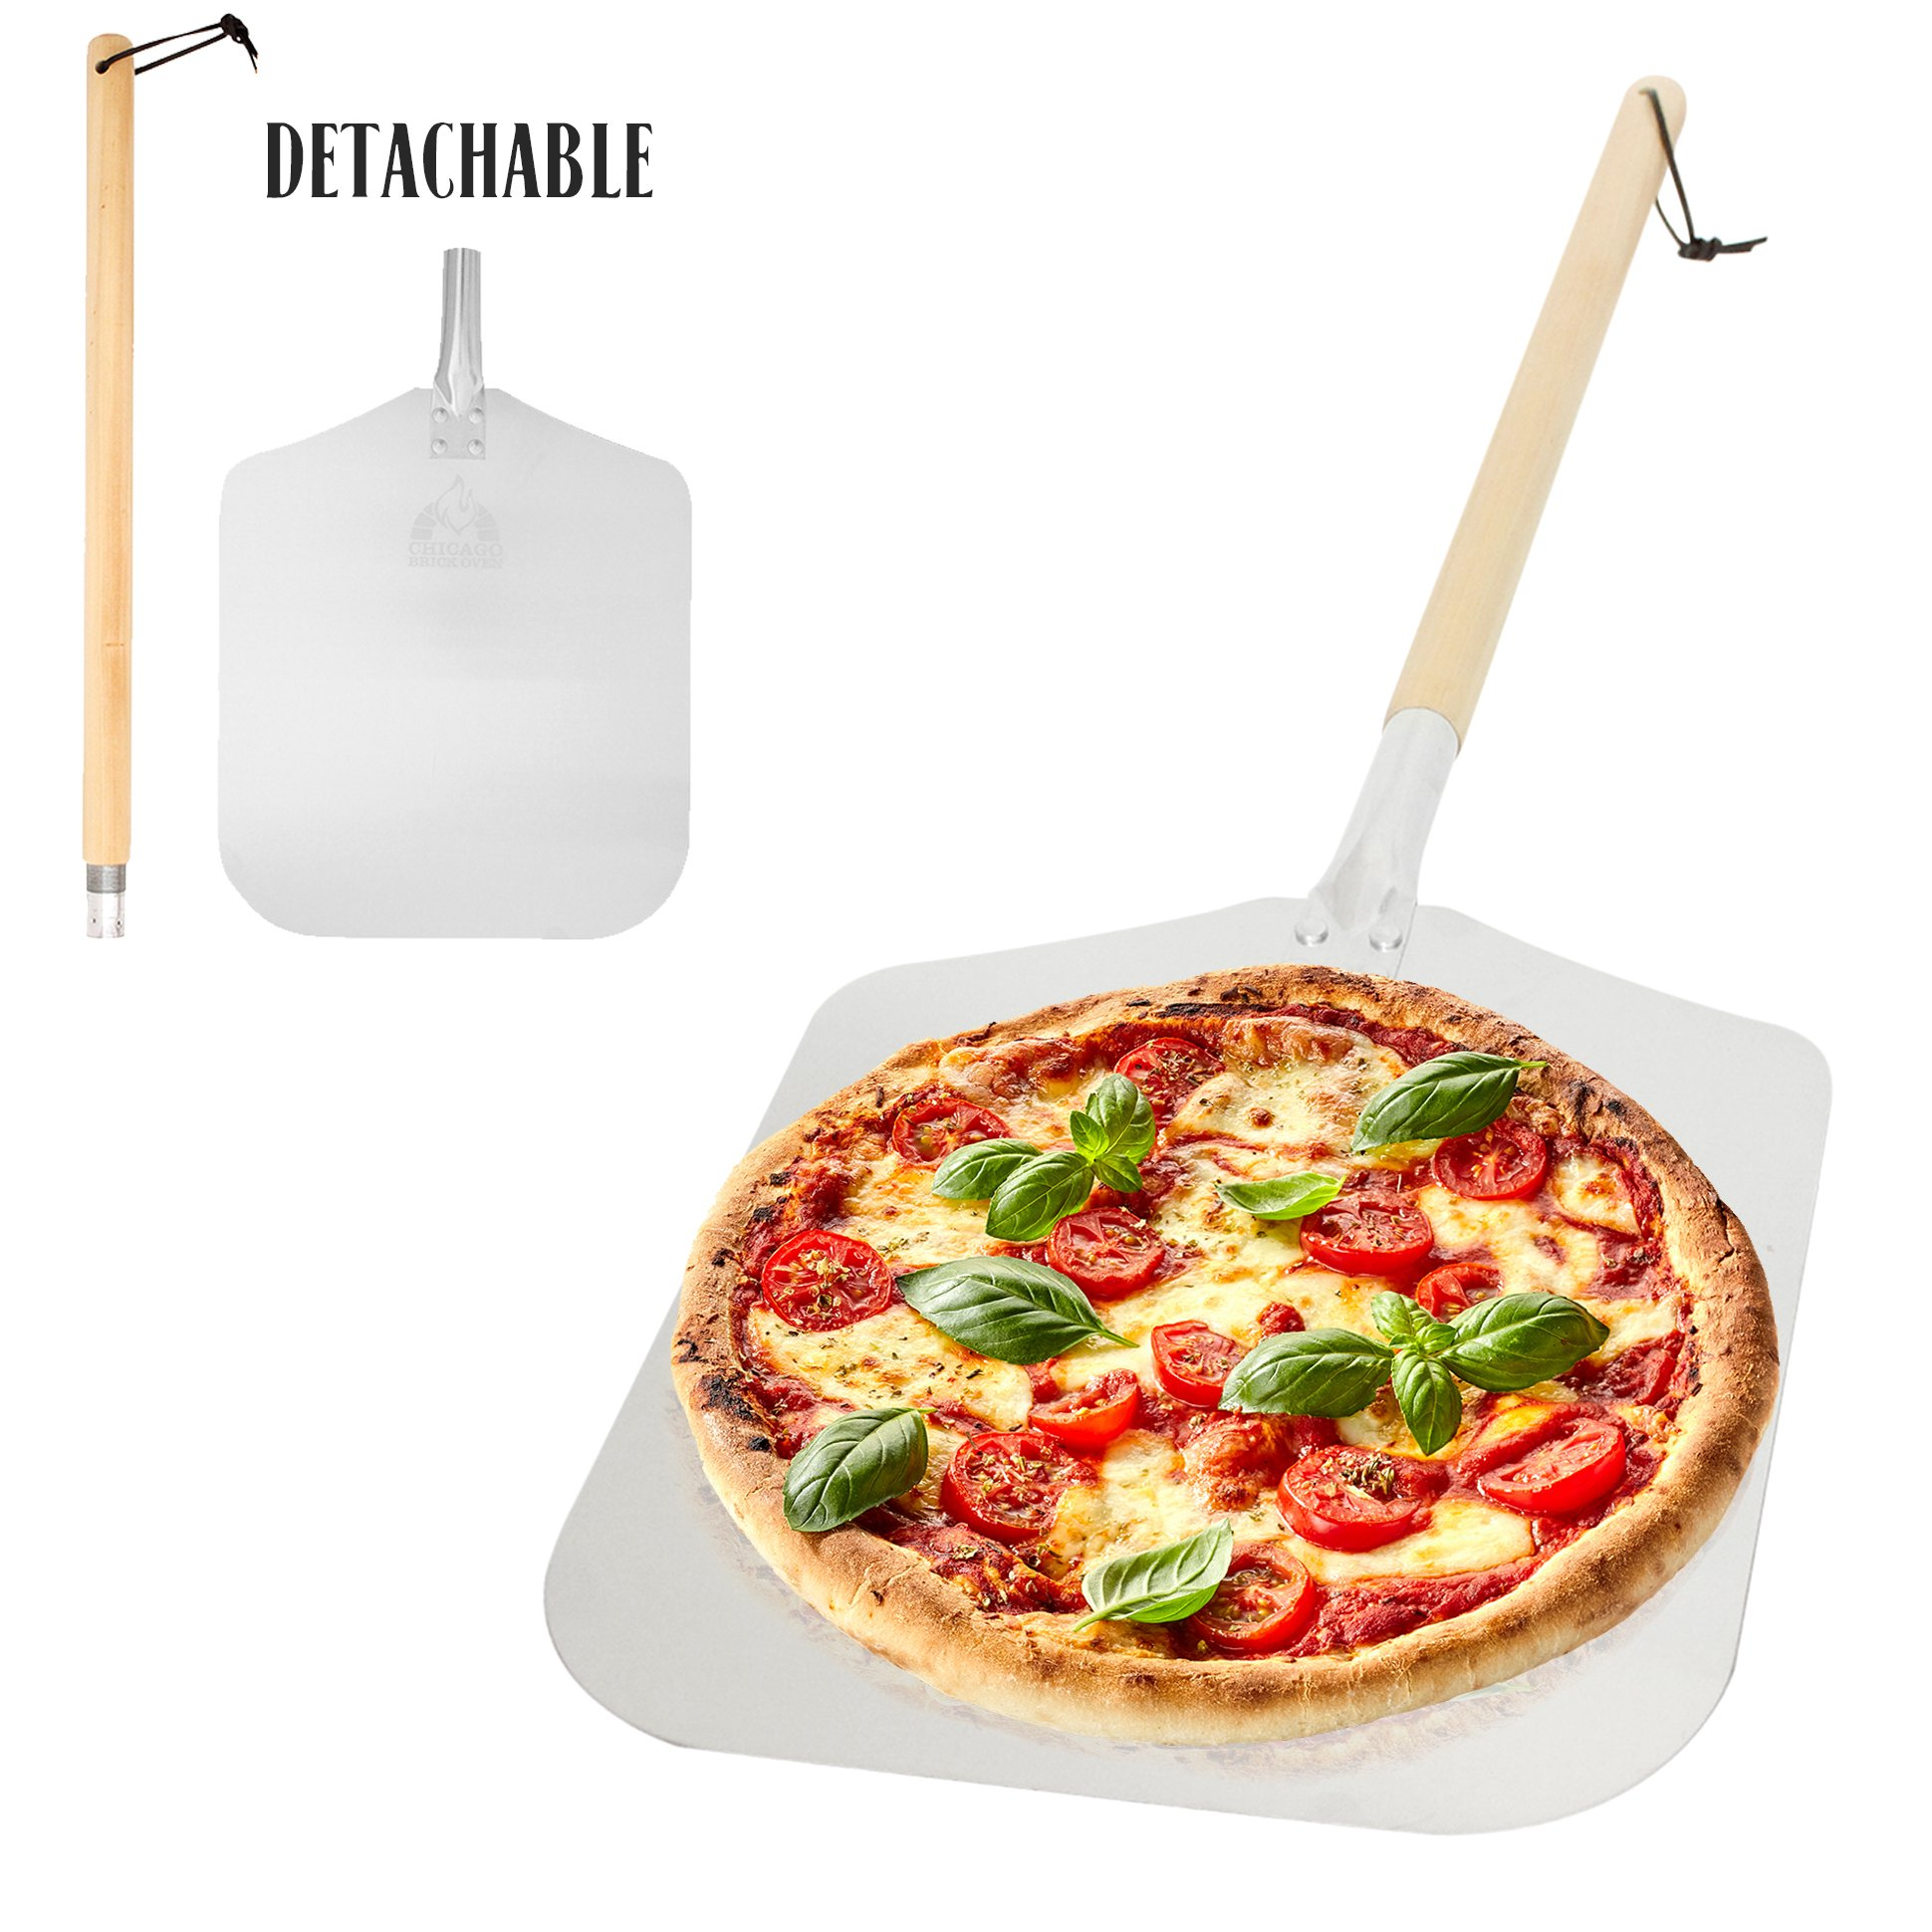 Aluminum Pizza Peel Paddle with Detachable Wooden Handle, 12'' x 14'' inch Blade, Long 21.5'' Handle with Leather Strap, 35.5 inch overall - Outdoor Pizza Oven Accessories